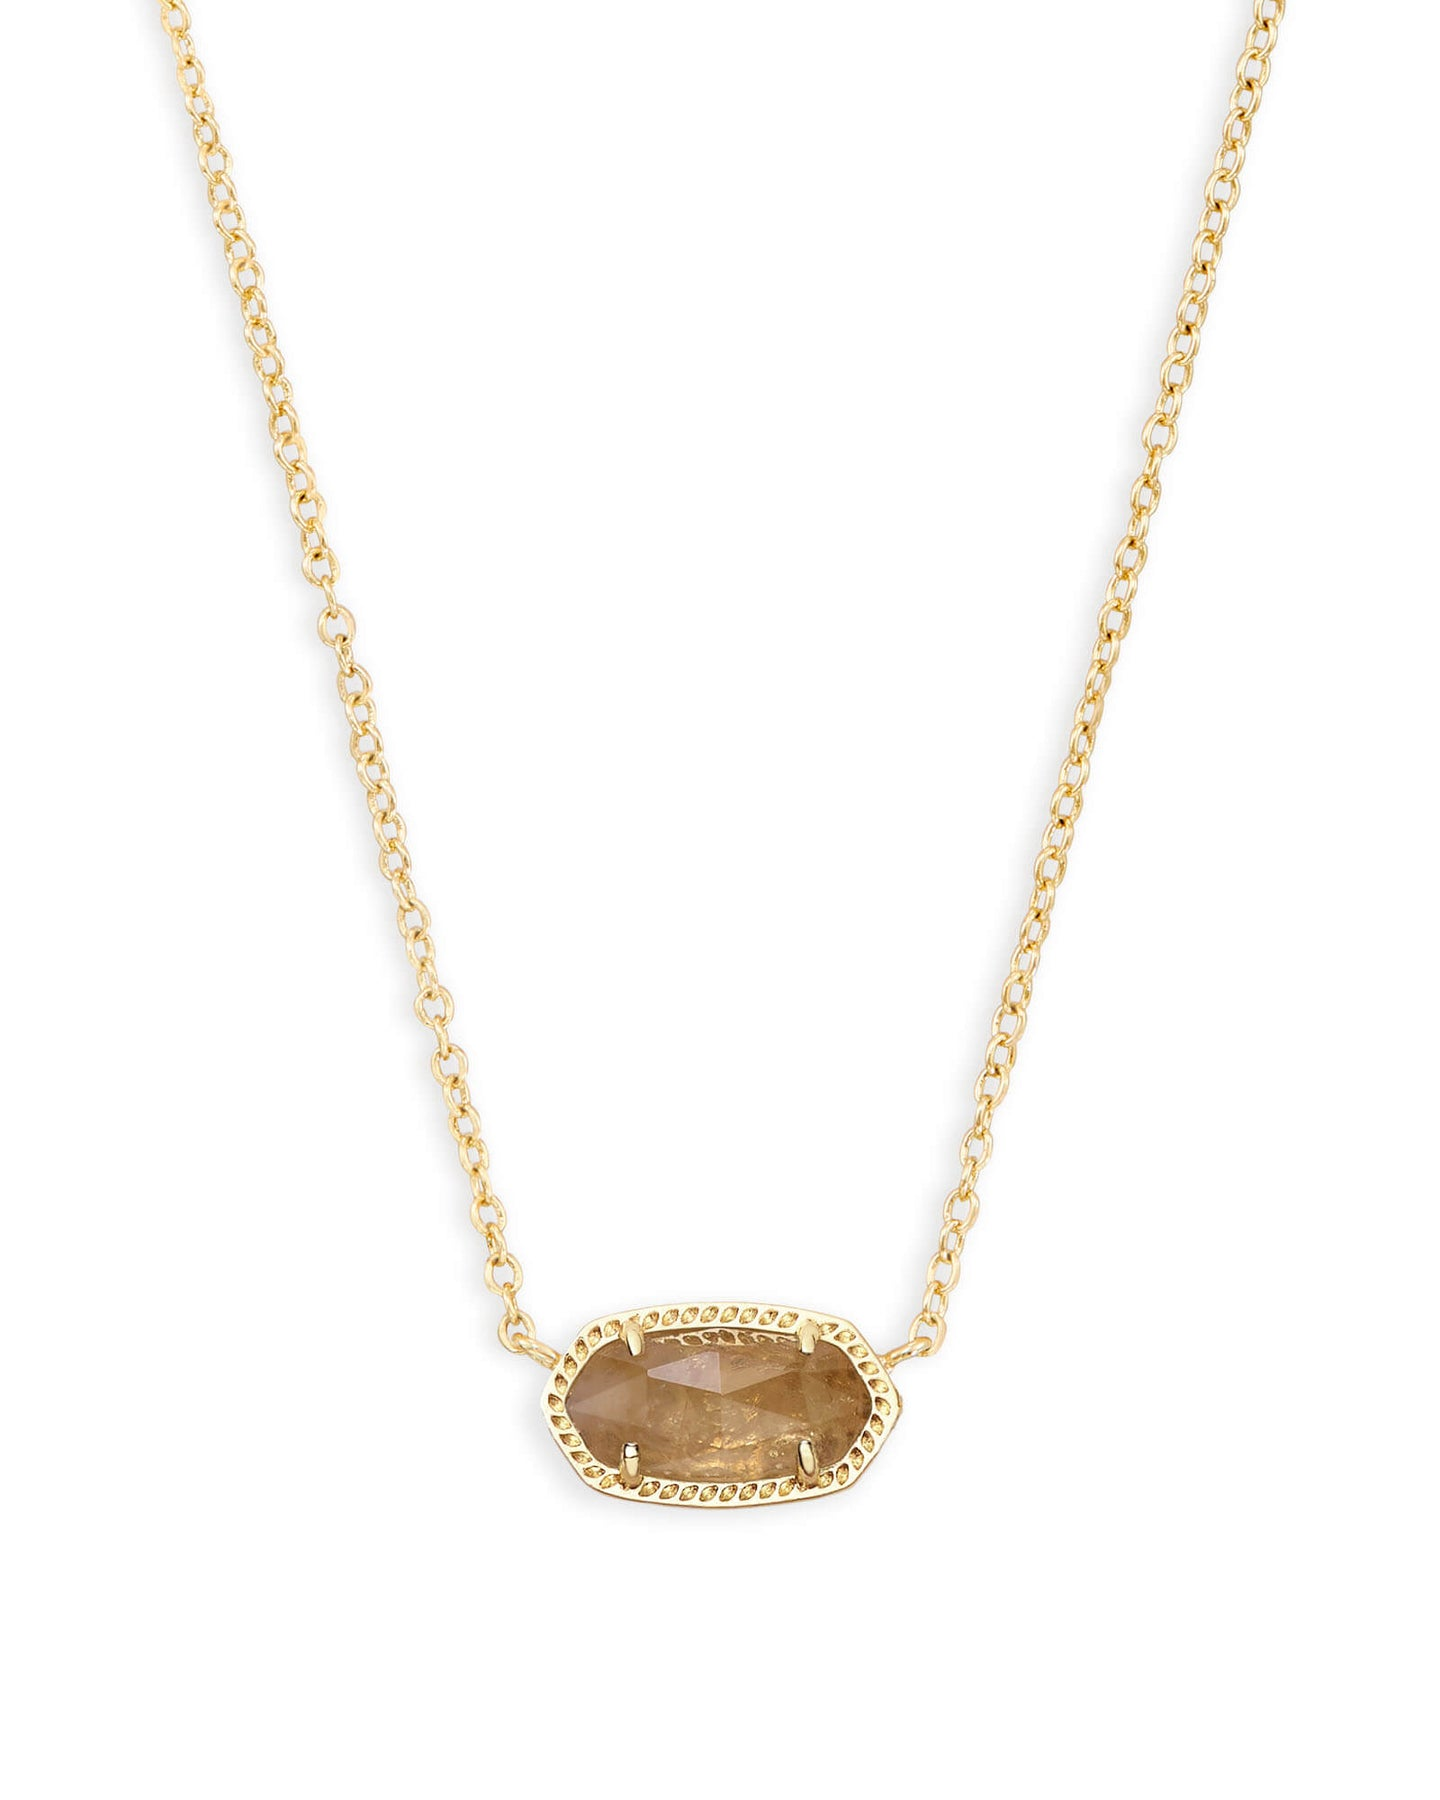 Kendra Scott Elisa Necklace Gold Orange Citrine Quartz